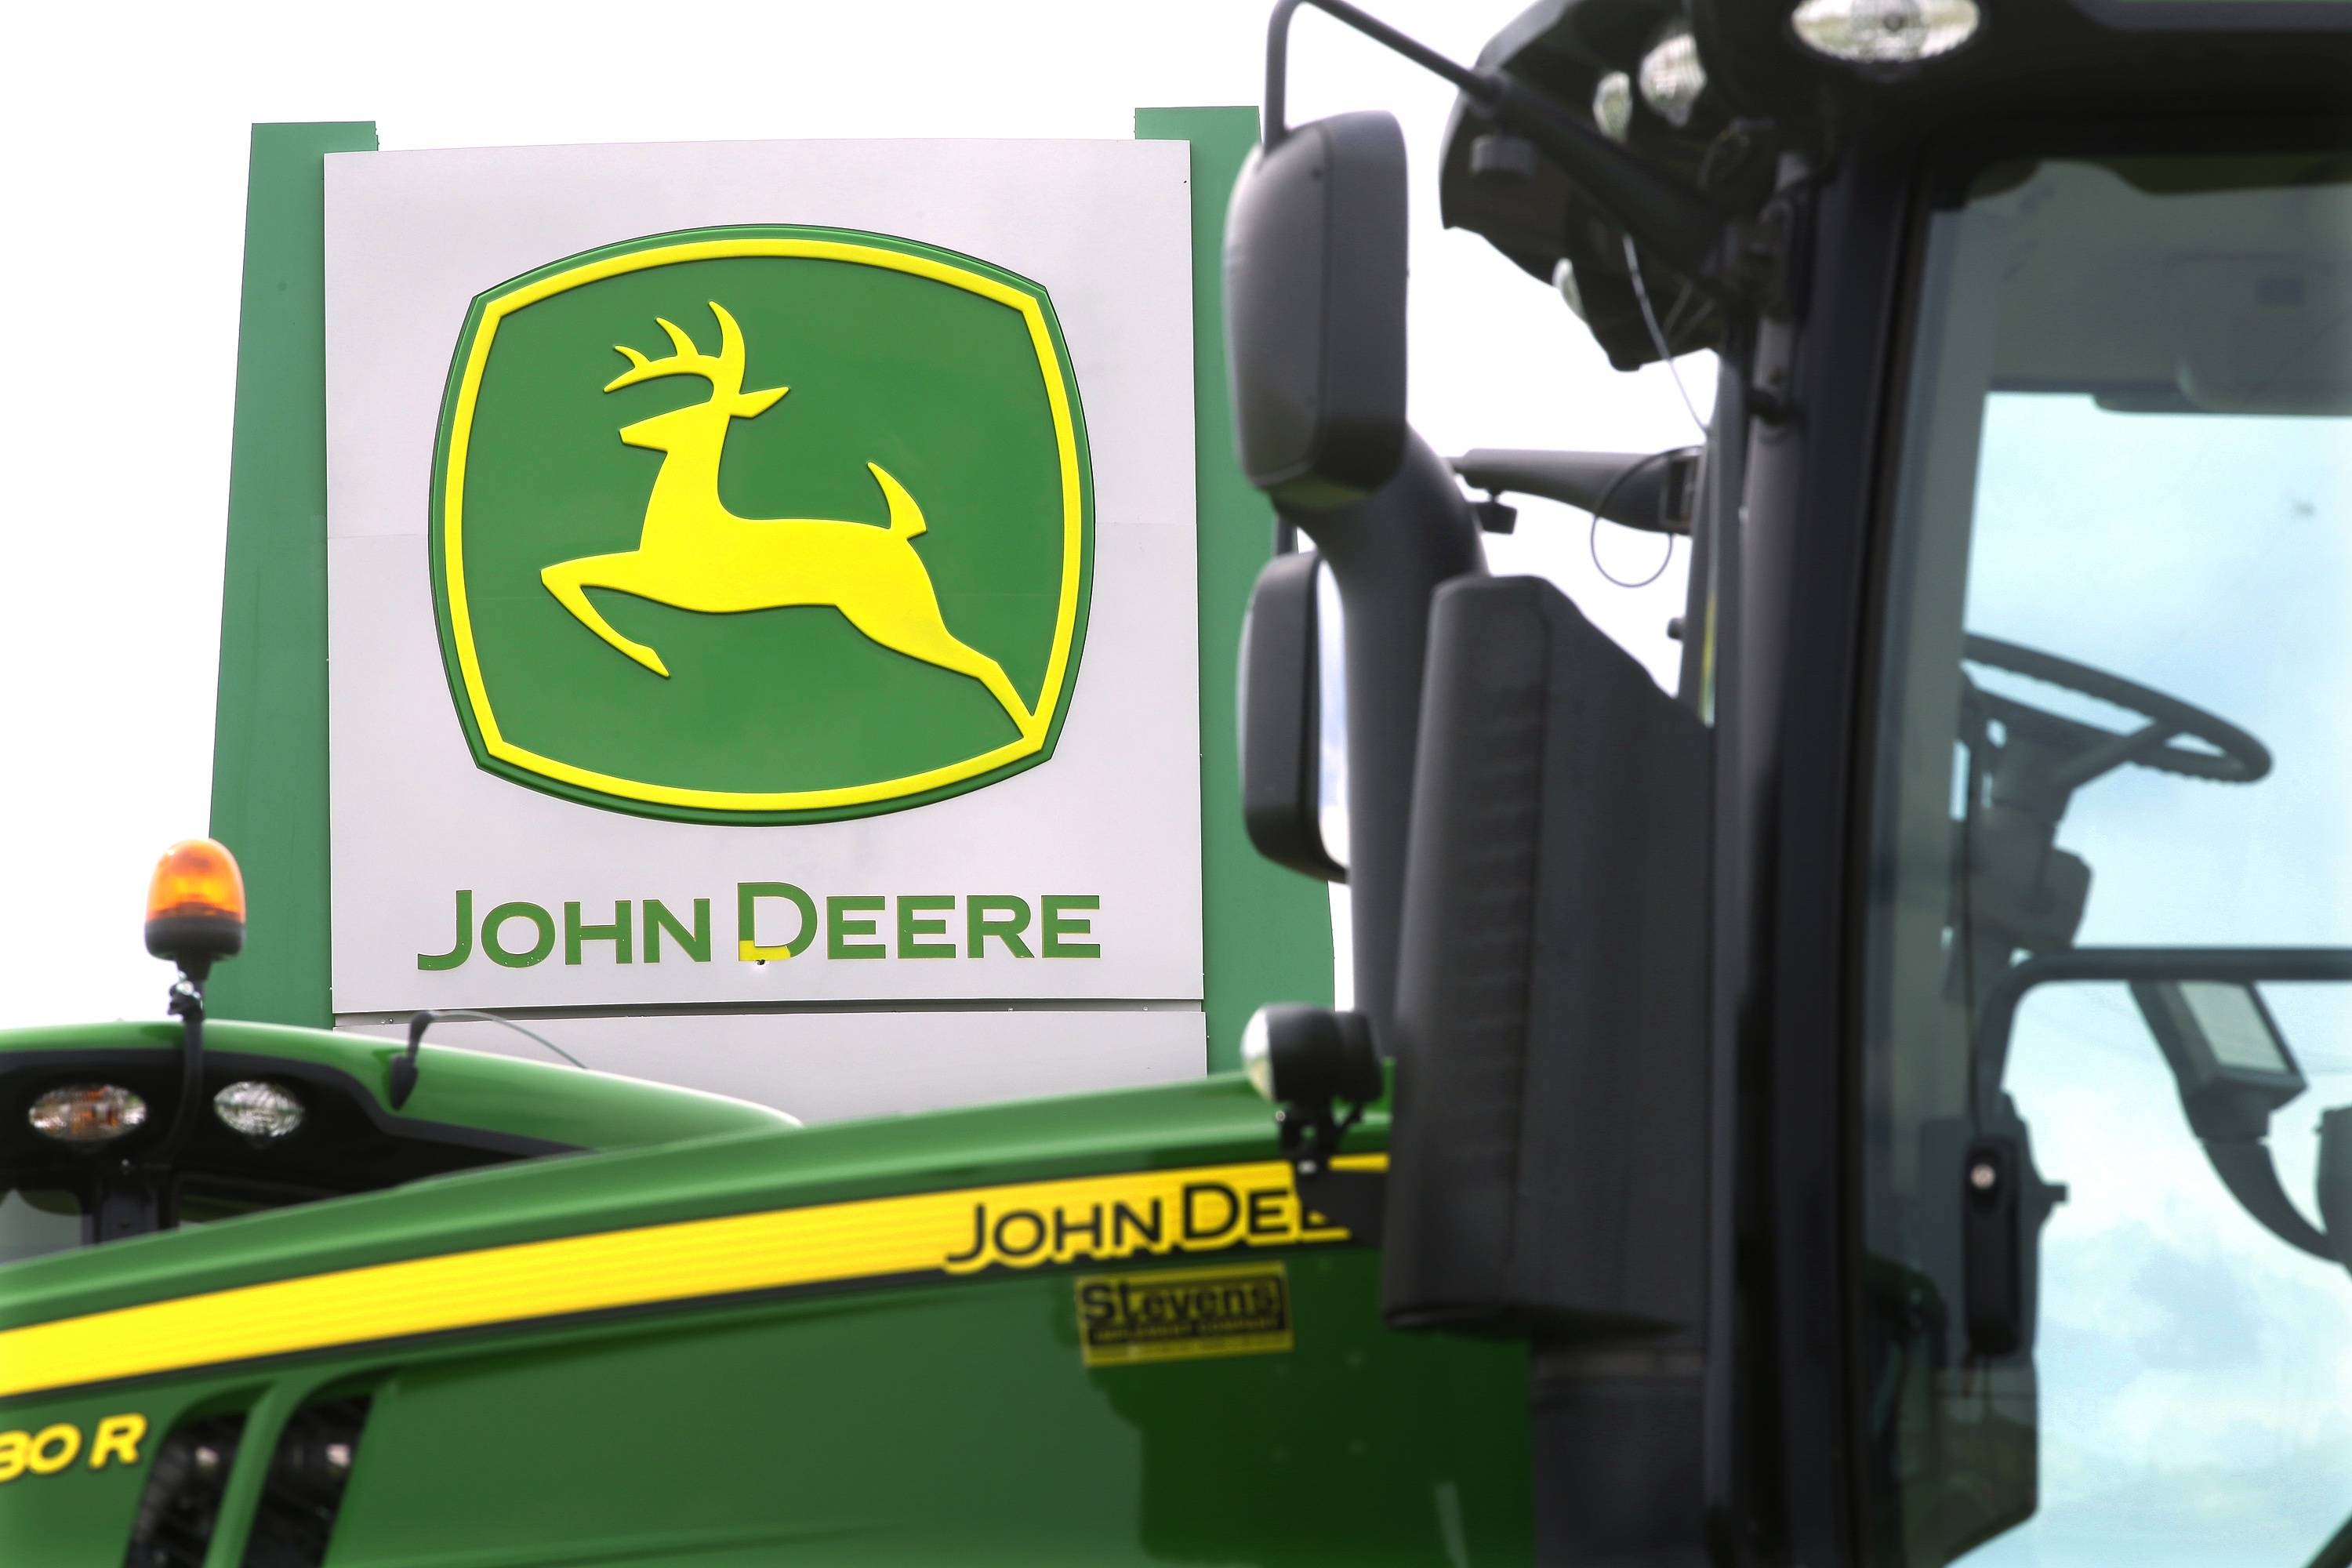 Deere's third-quarter profit fell 15 percent and the farming equipment maker thinks the same weak sales in the U.S., Canada and abroad will cut into earnings for the year.